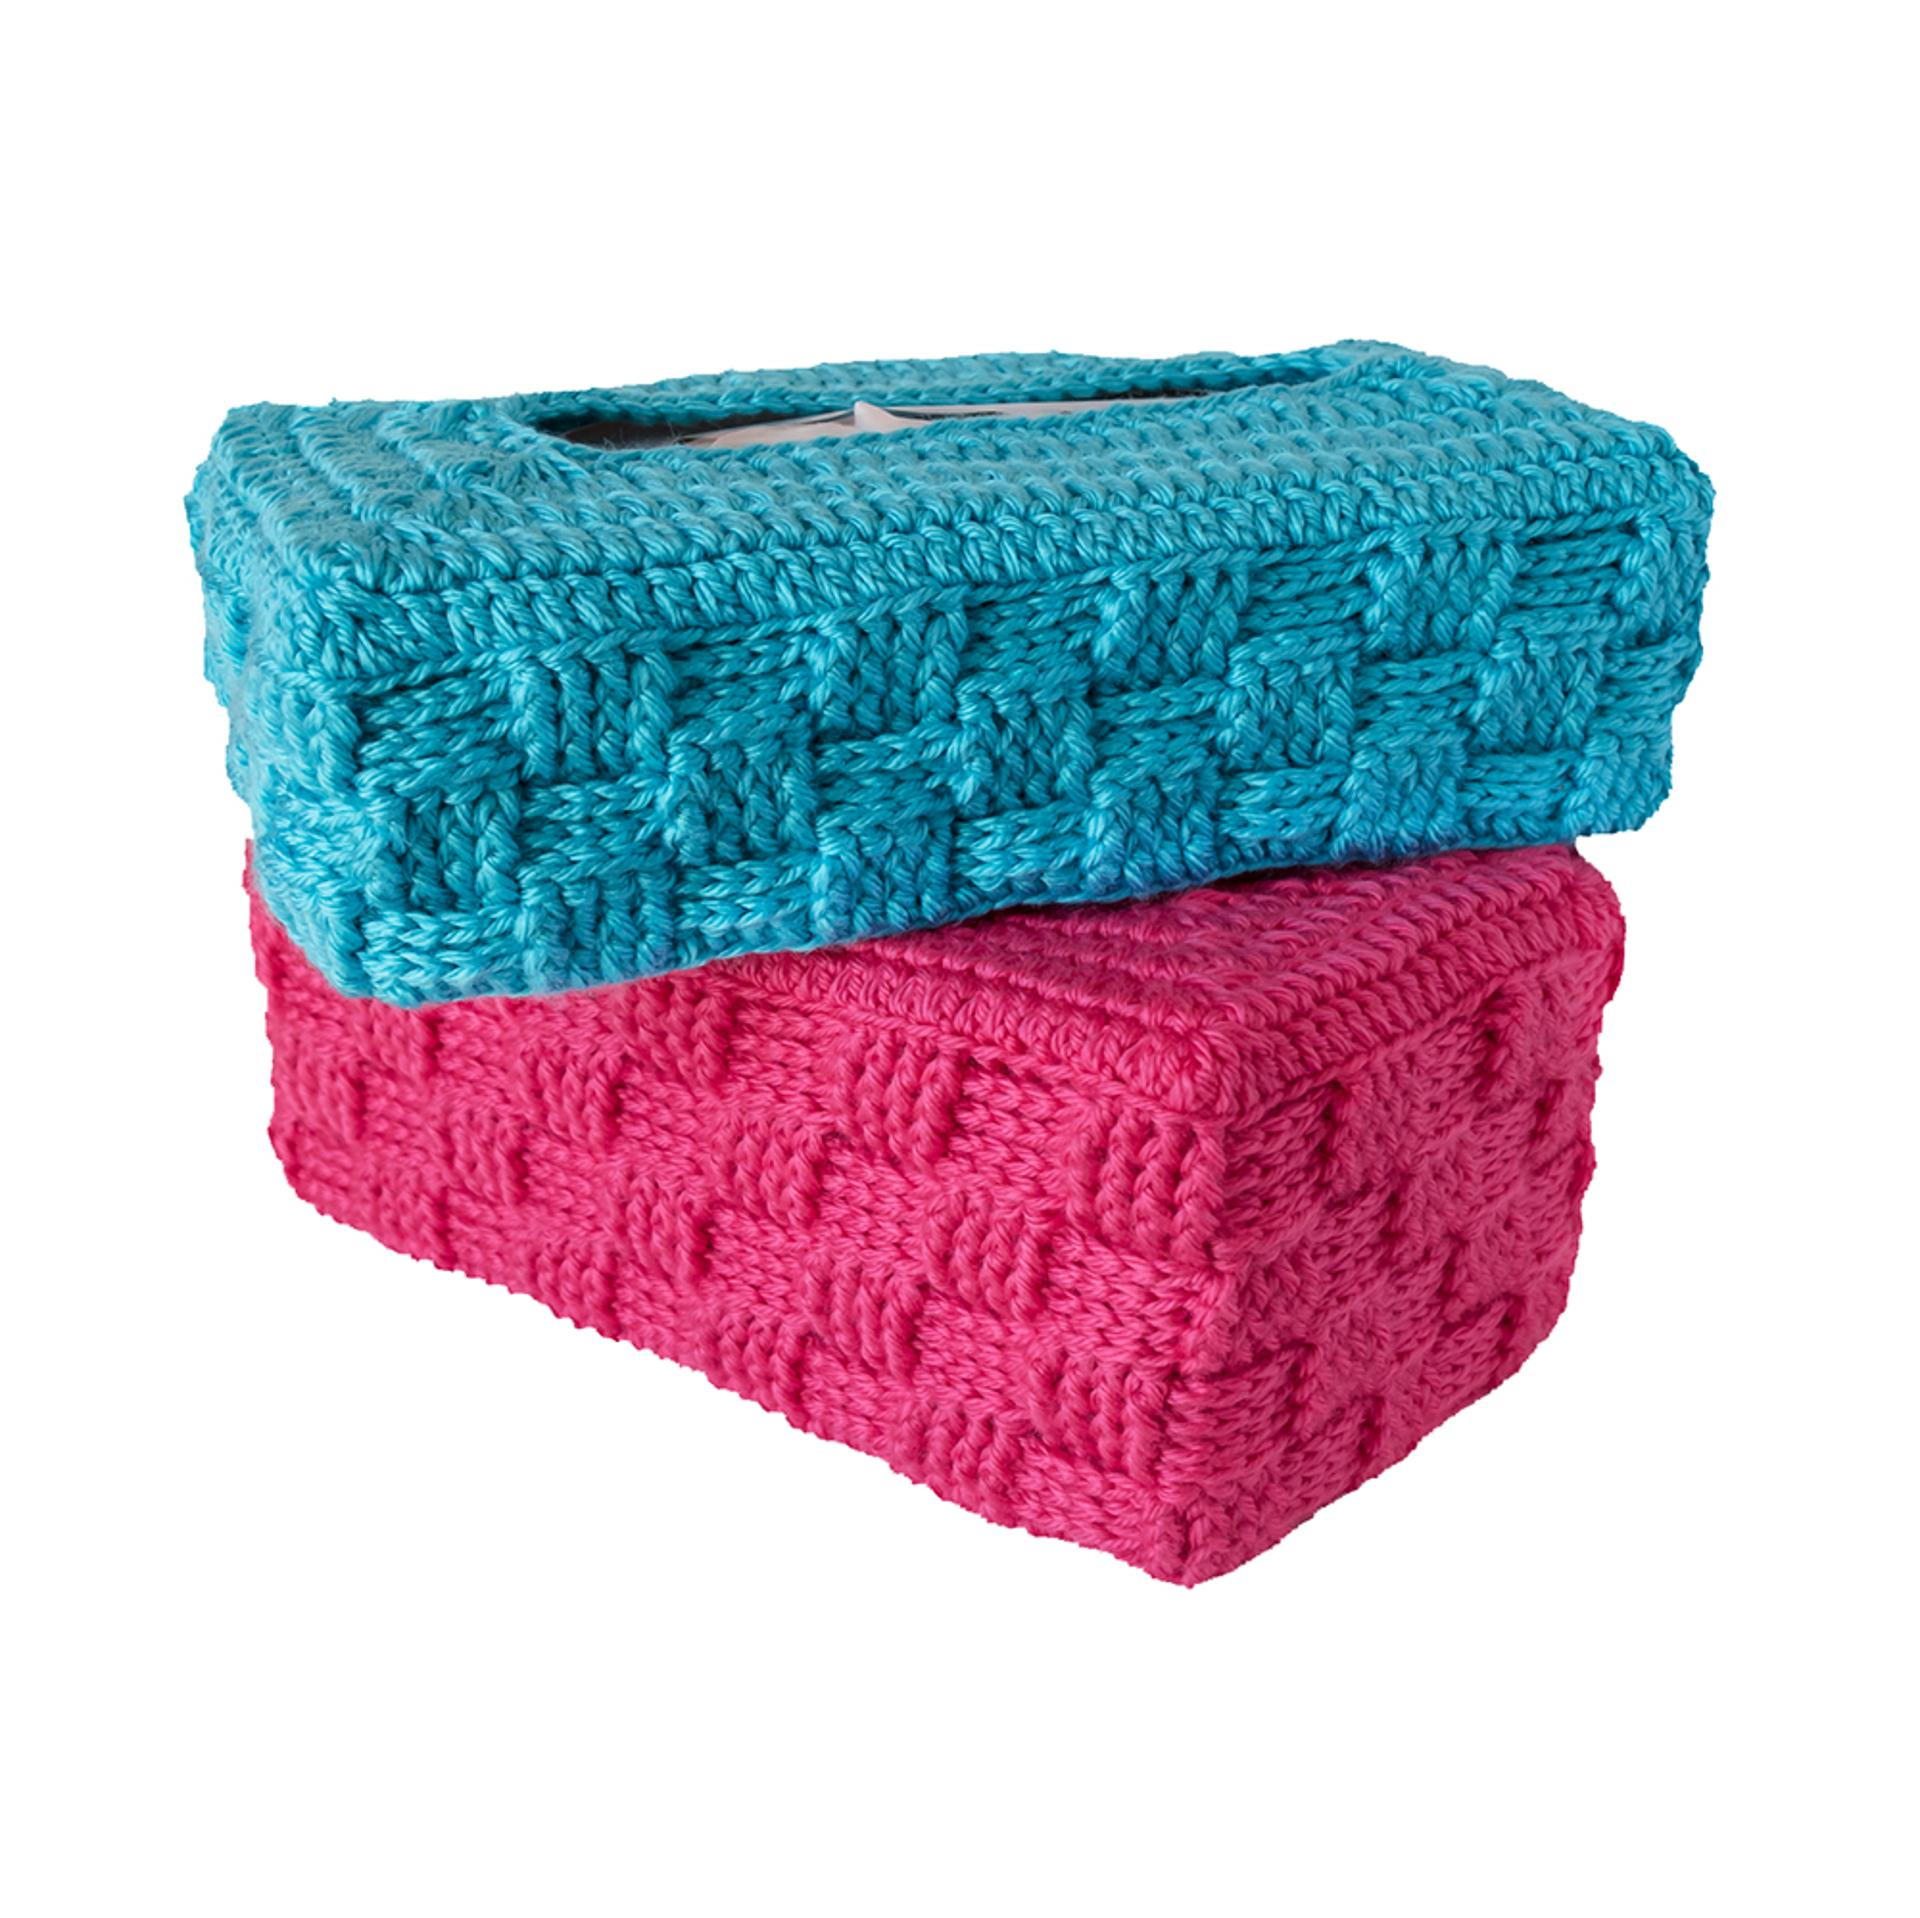 tissue box cozy crochet pattern